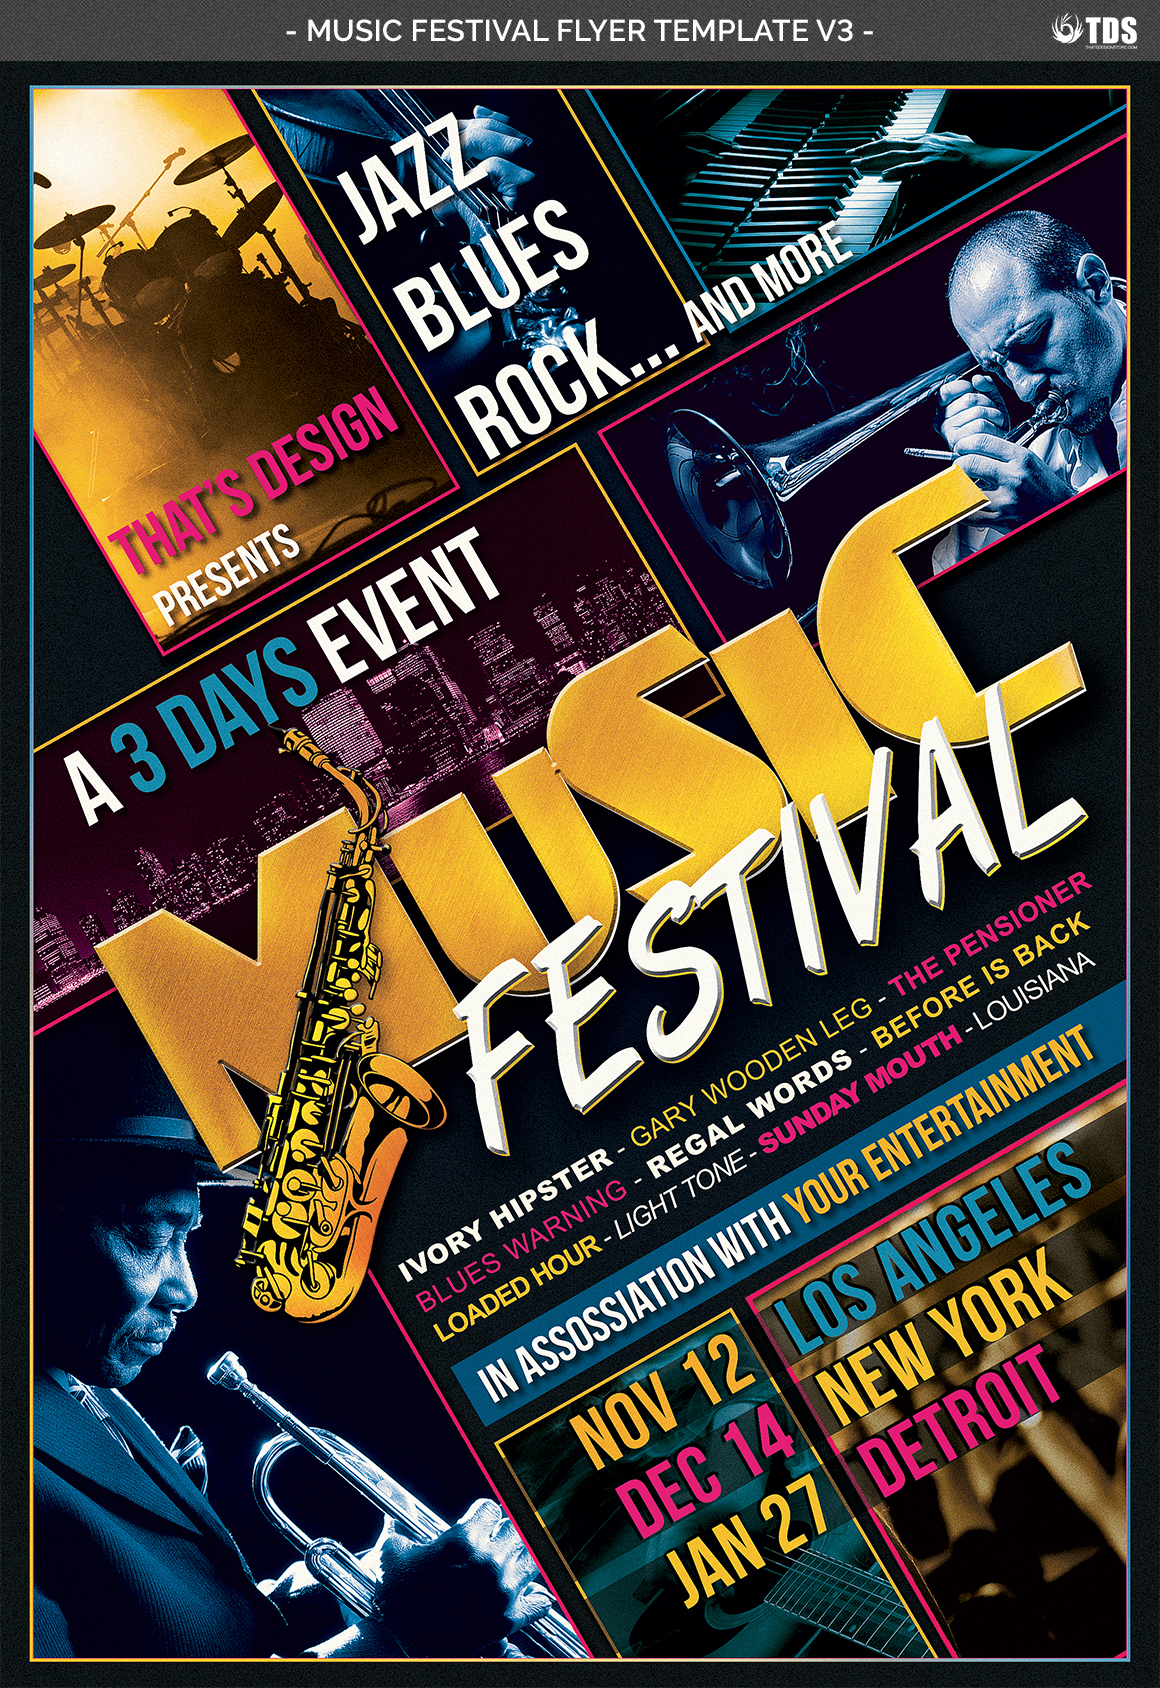 Music Festival Flyer Template V3 example image 4